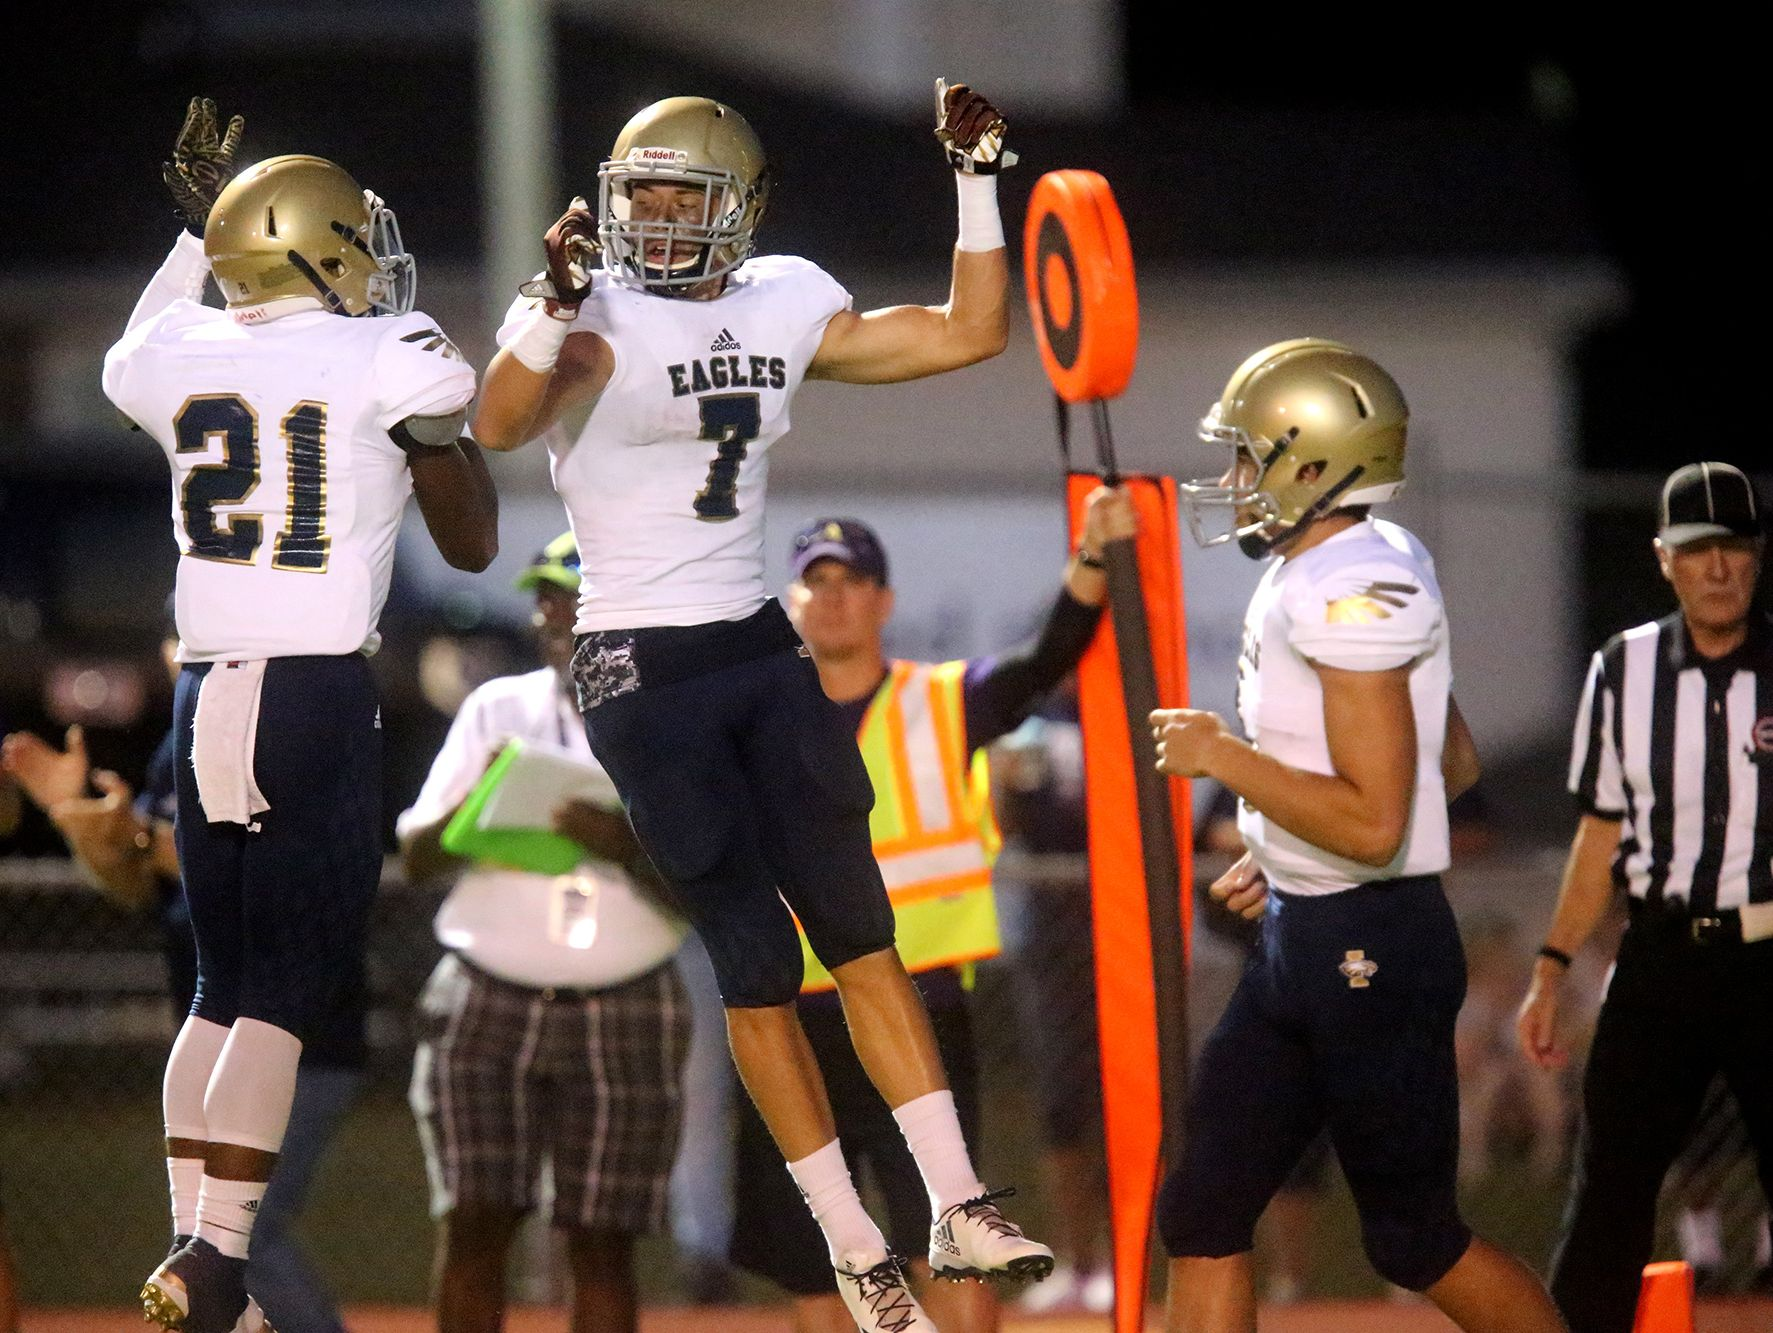 Independence's Troy Henderson (21) and Landon Guidry (7) celebrate Guidry's touchdown against Smyrna, on Friday, Sept. 9, 2016, at Smyrna.